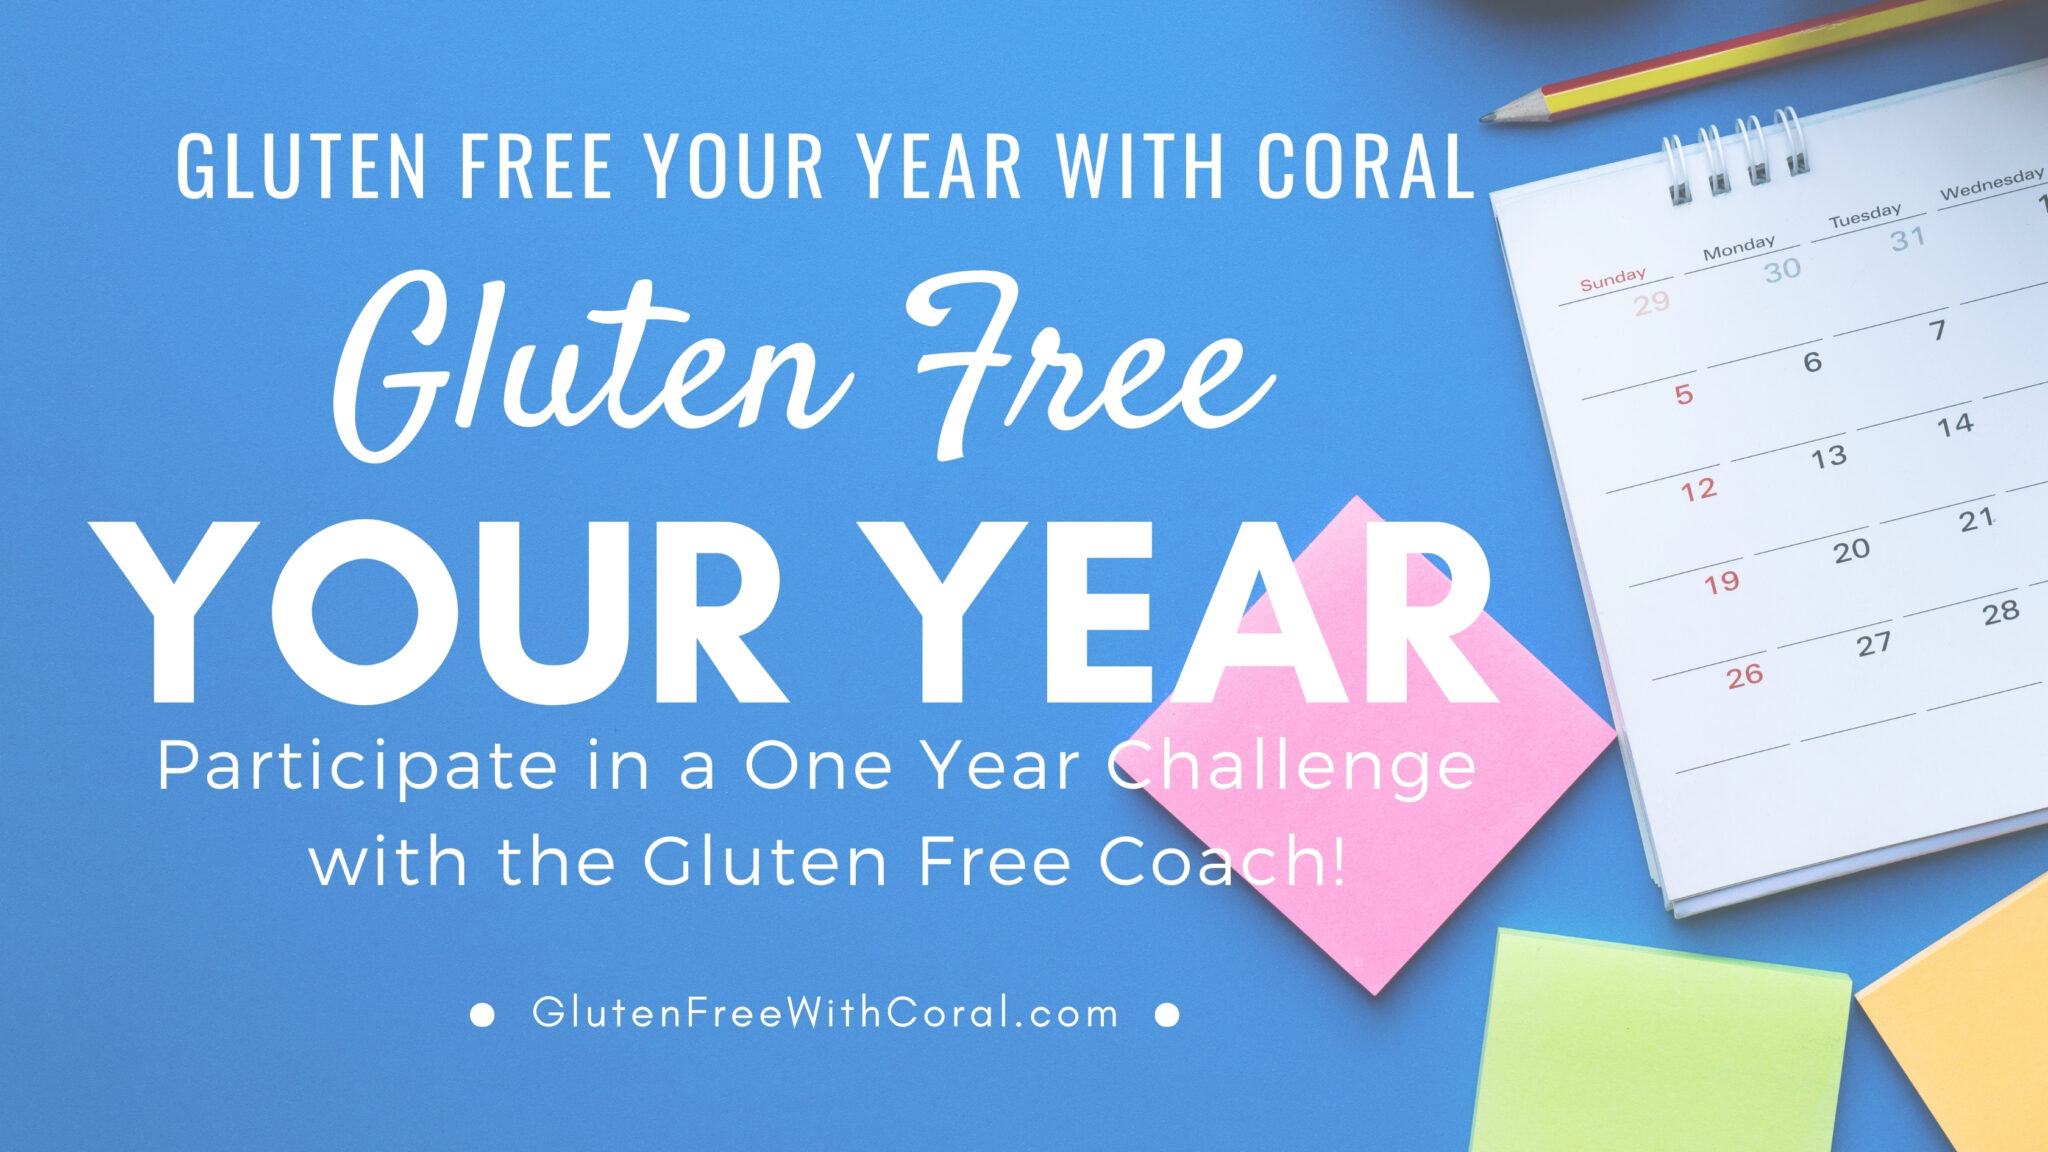 Gluten Free Your Year with Coral